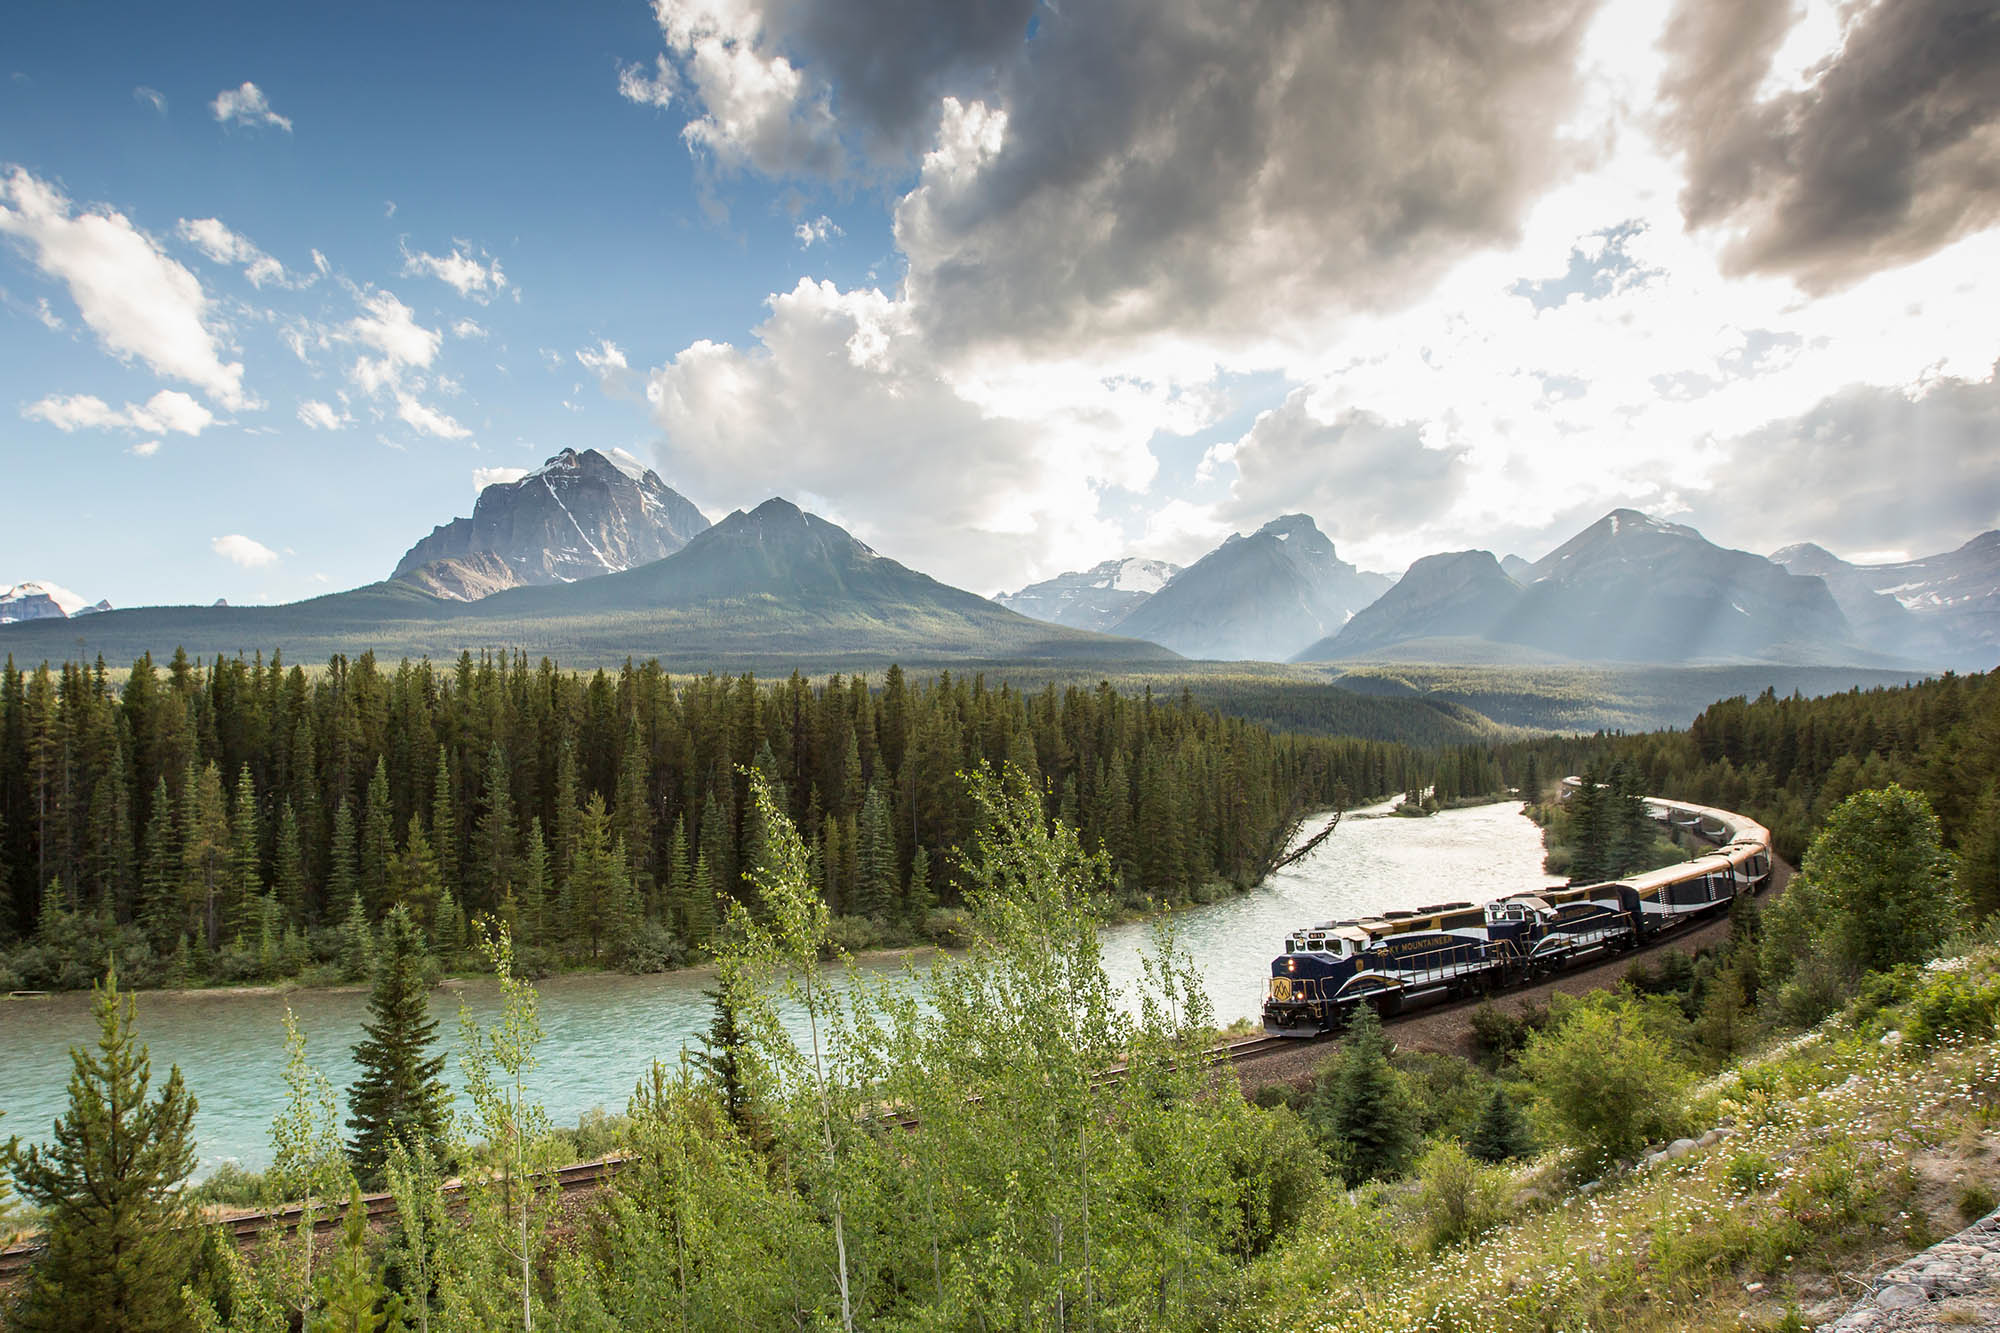 Rocky Mountaineer Train in Banff National Park